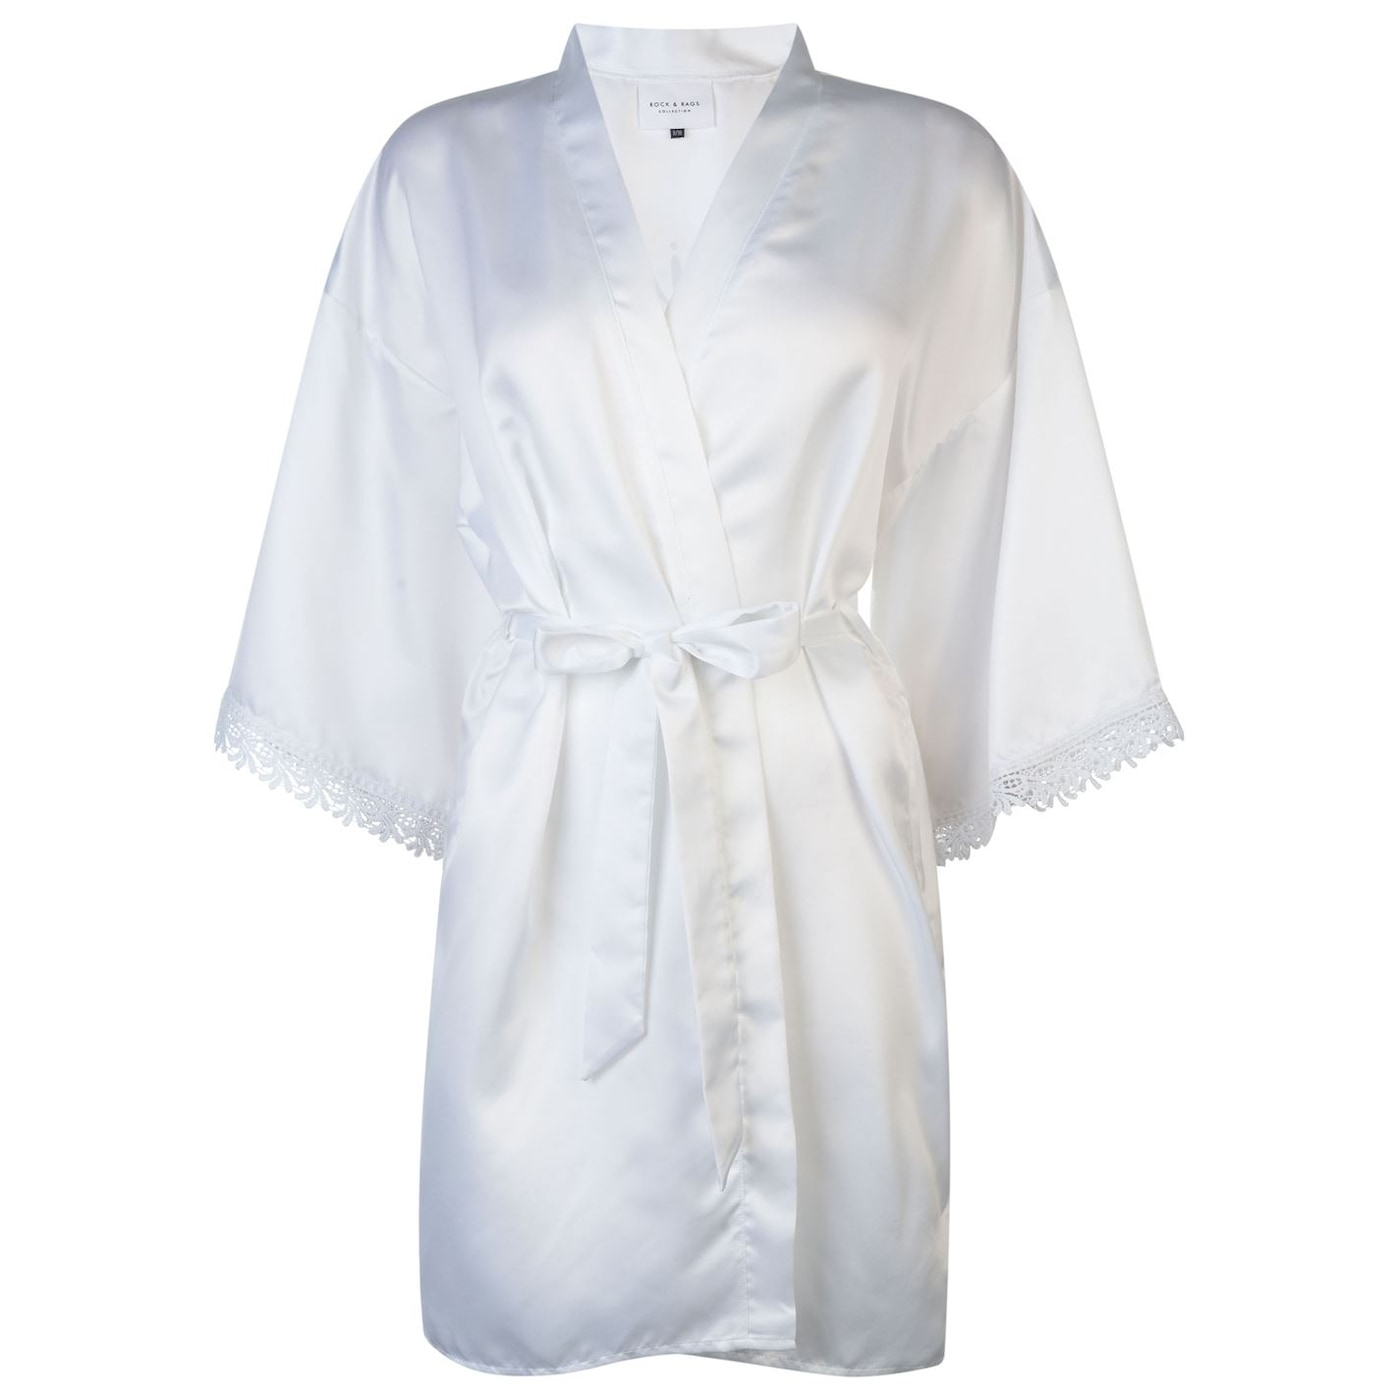 Rock and Rags Bridal Robe Ladies